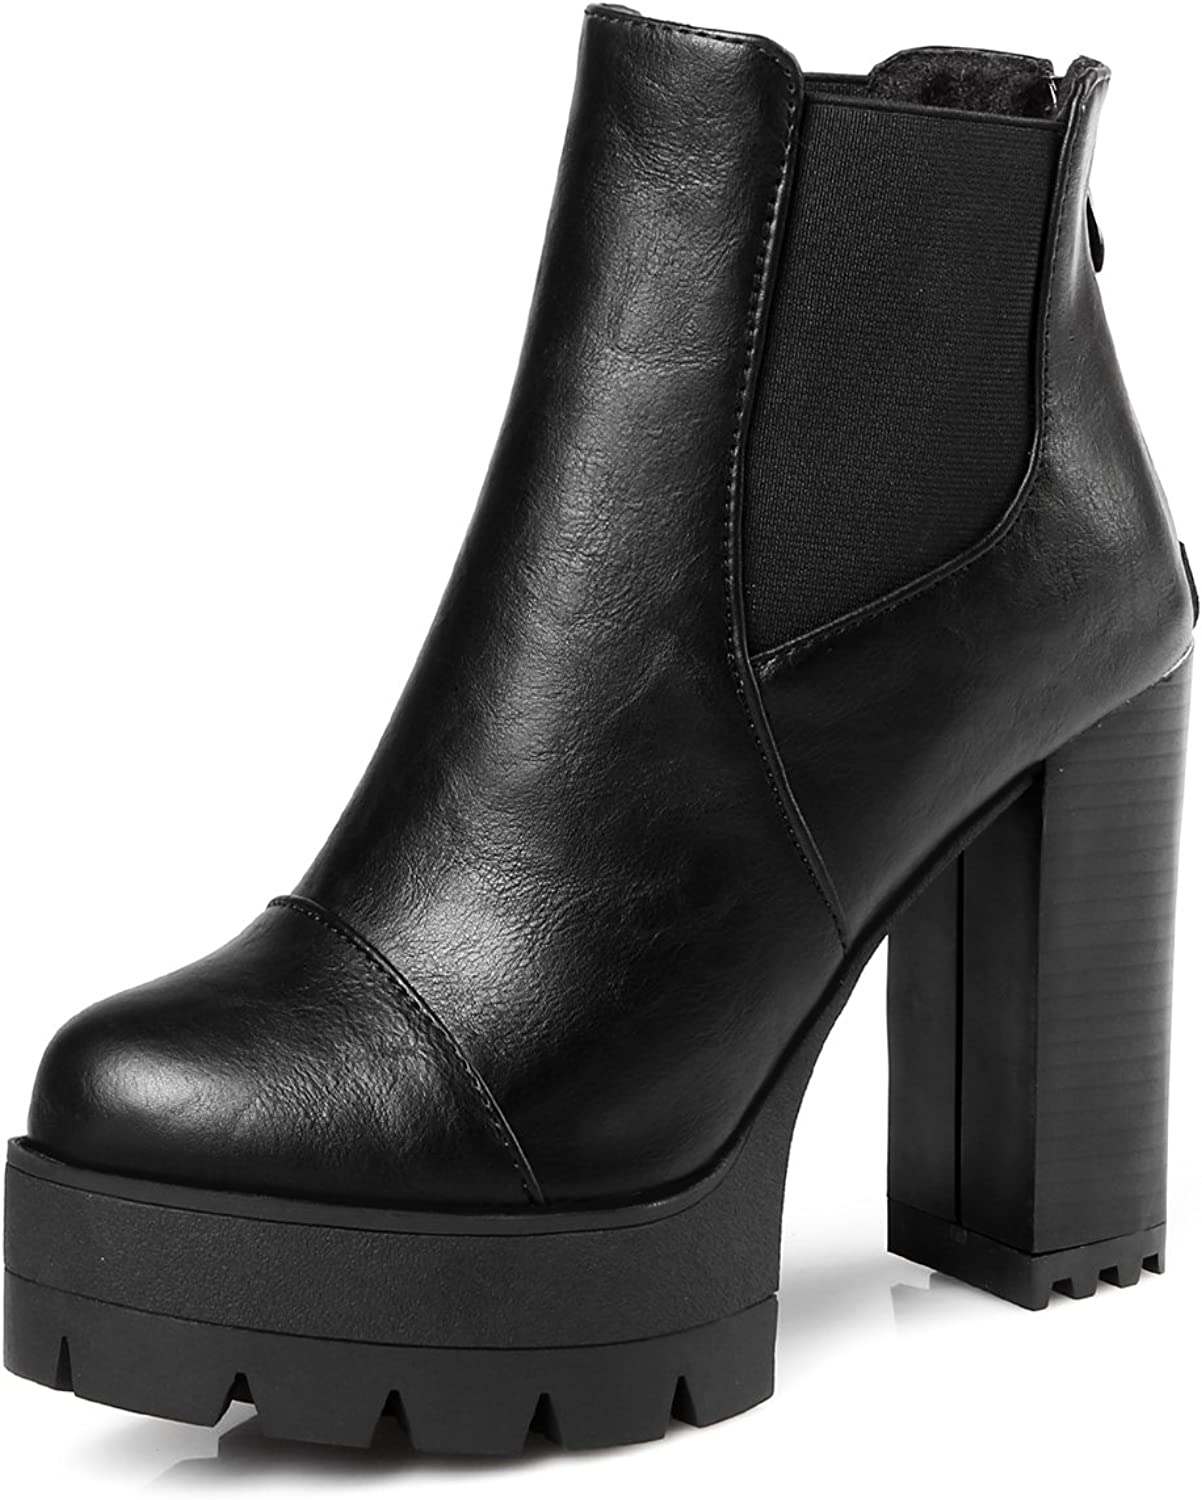 DoraTasia Women's Back Zipper Small Round Toe Platform High Chunky Heel Ankle Boots